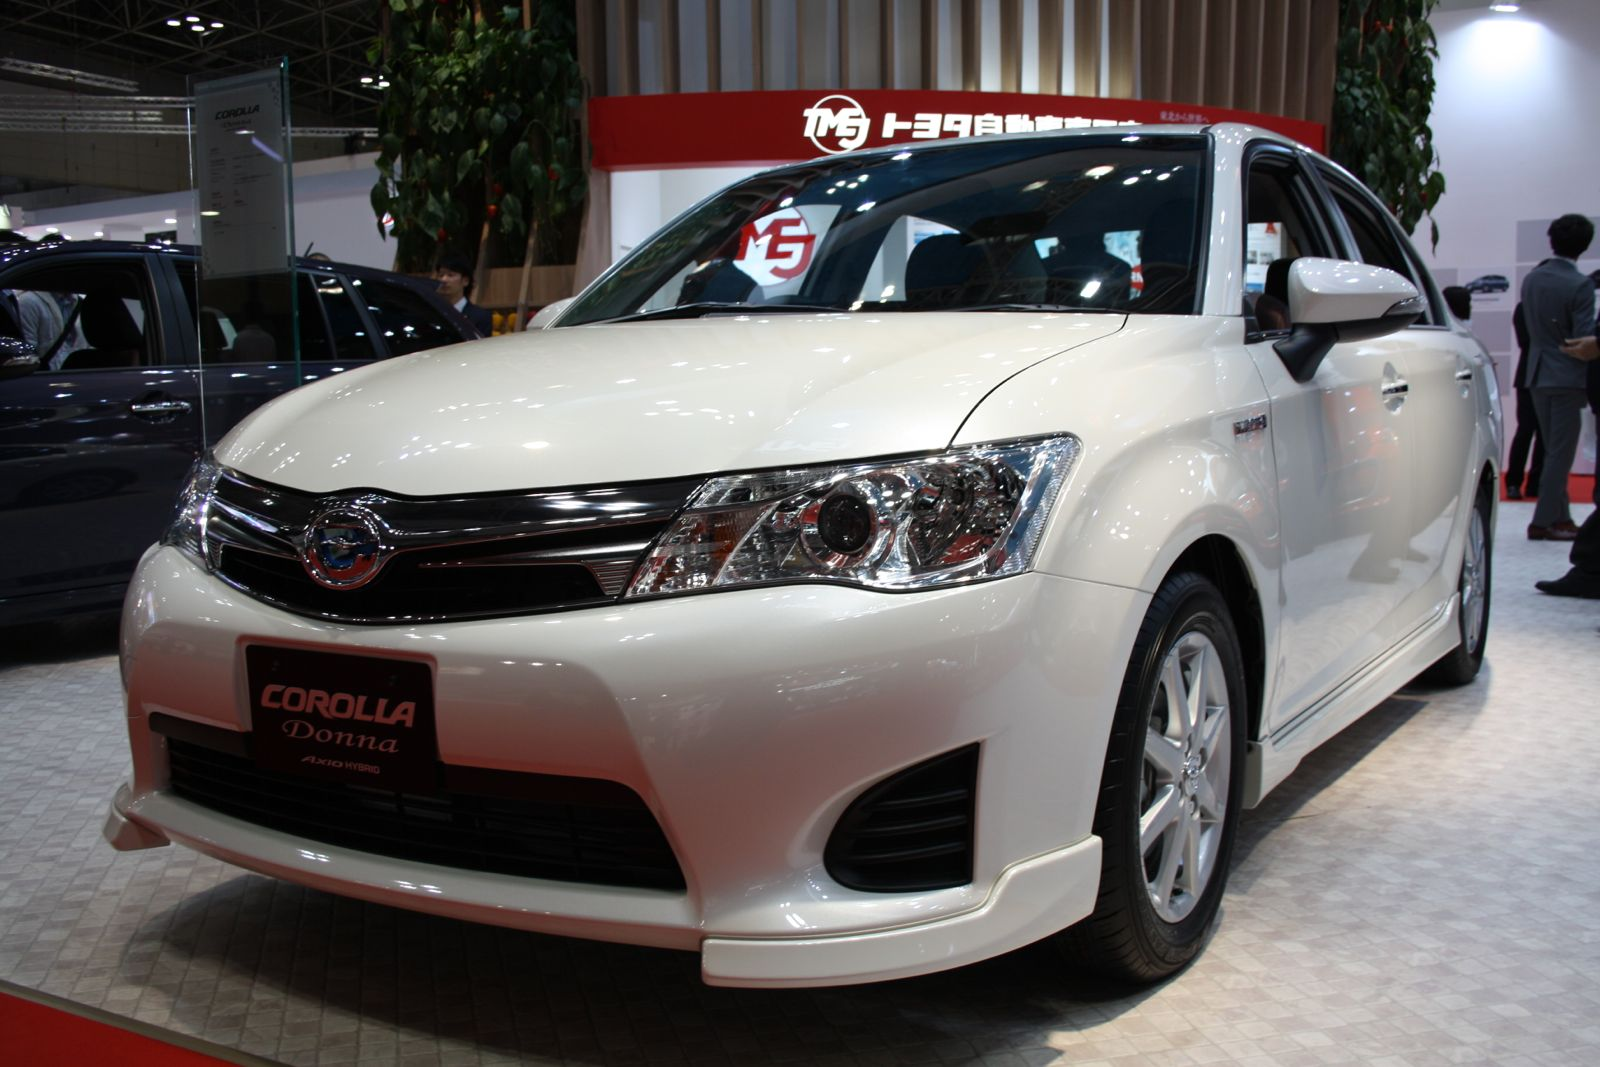 You Can Buy A 2013 Toyota Axio Hybrid For The Price Of The